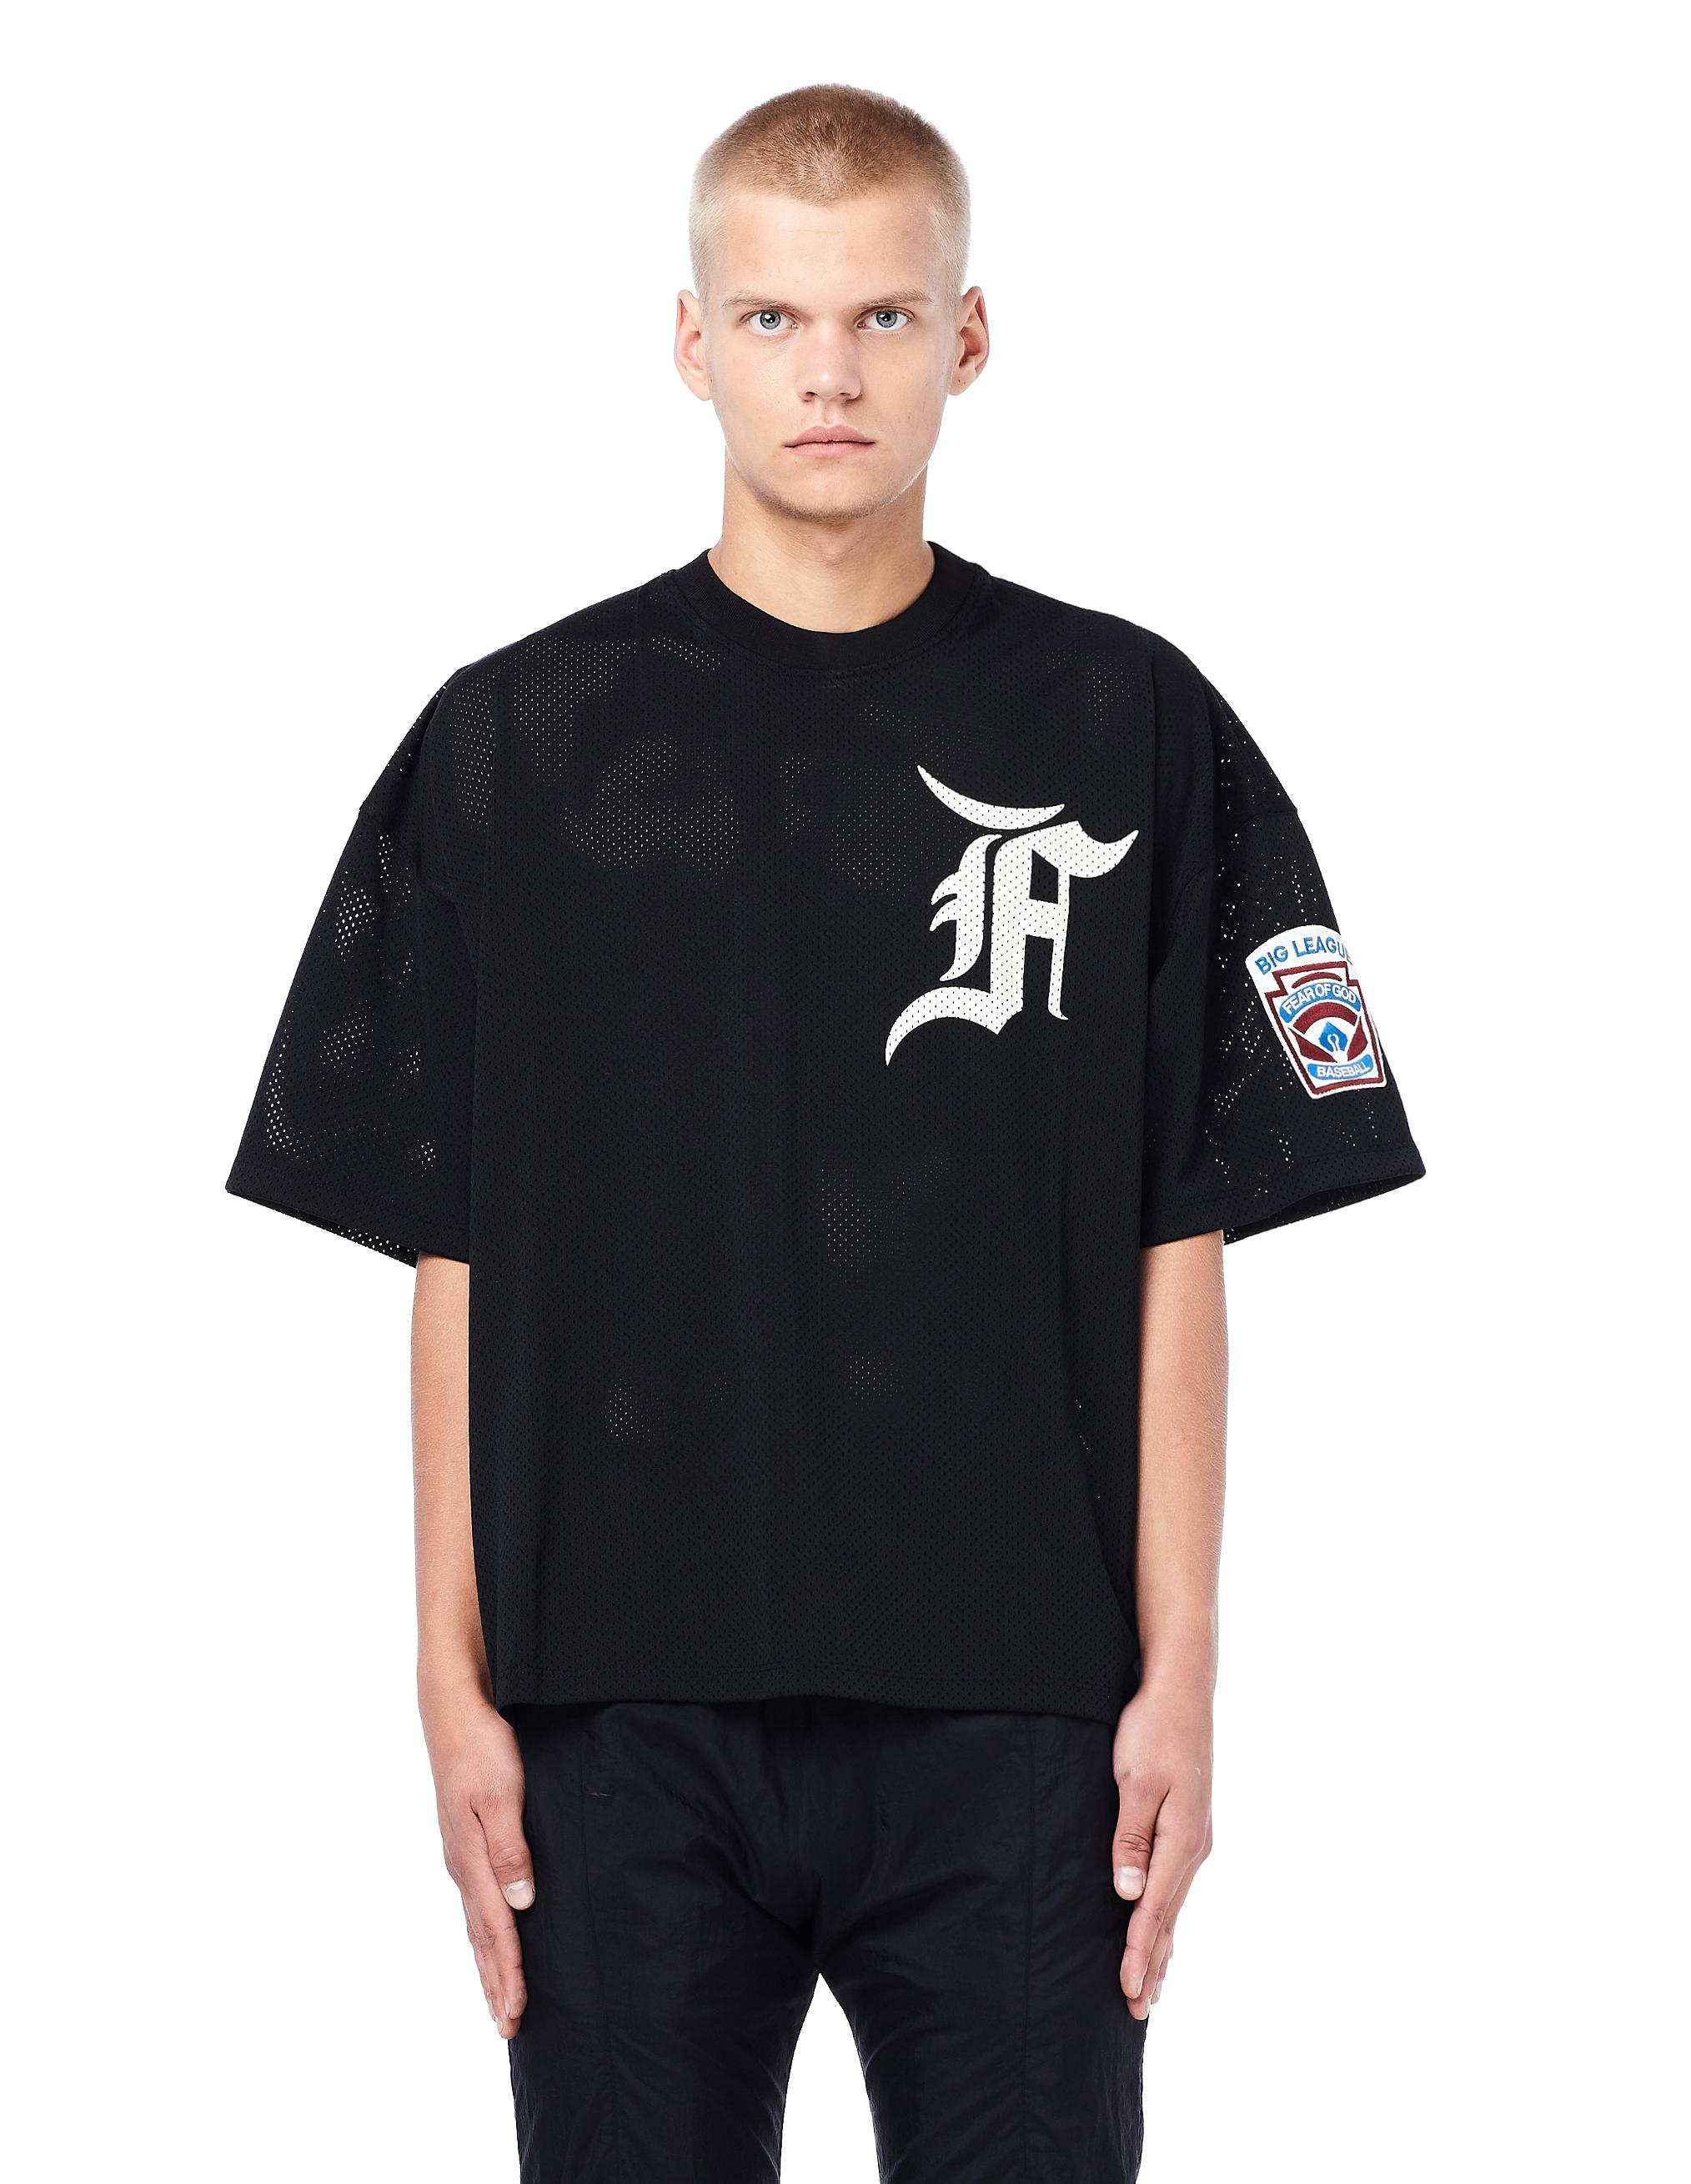 Fear Of God Mesh Batting Practice Jersey in Black for Men - Lyst 63e1a097e